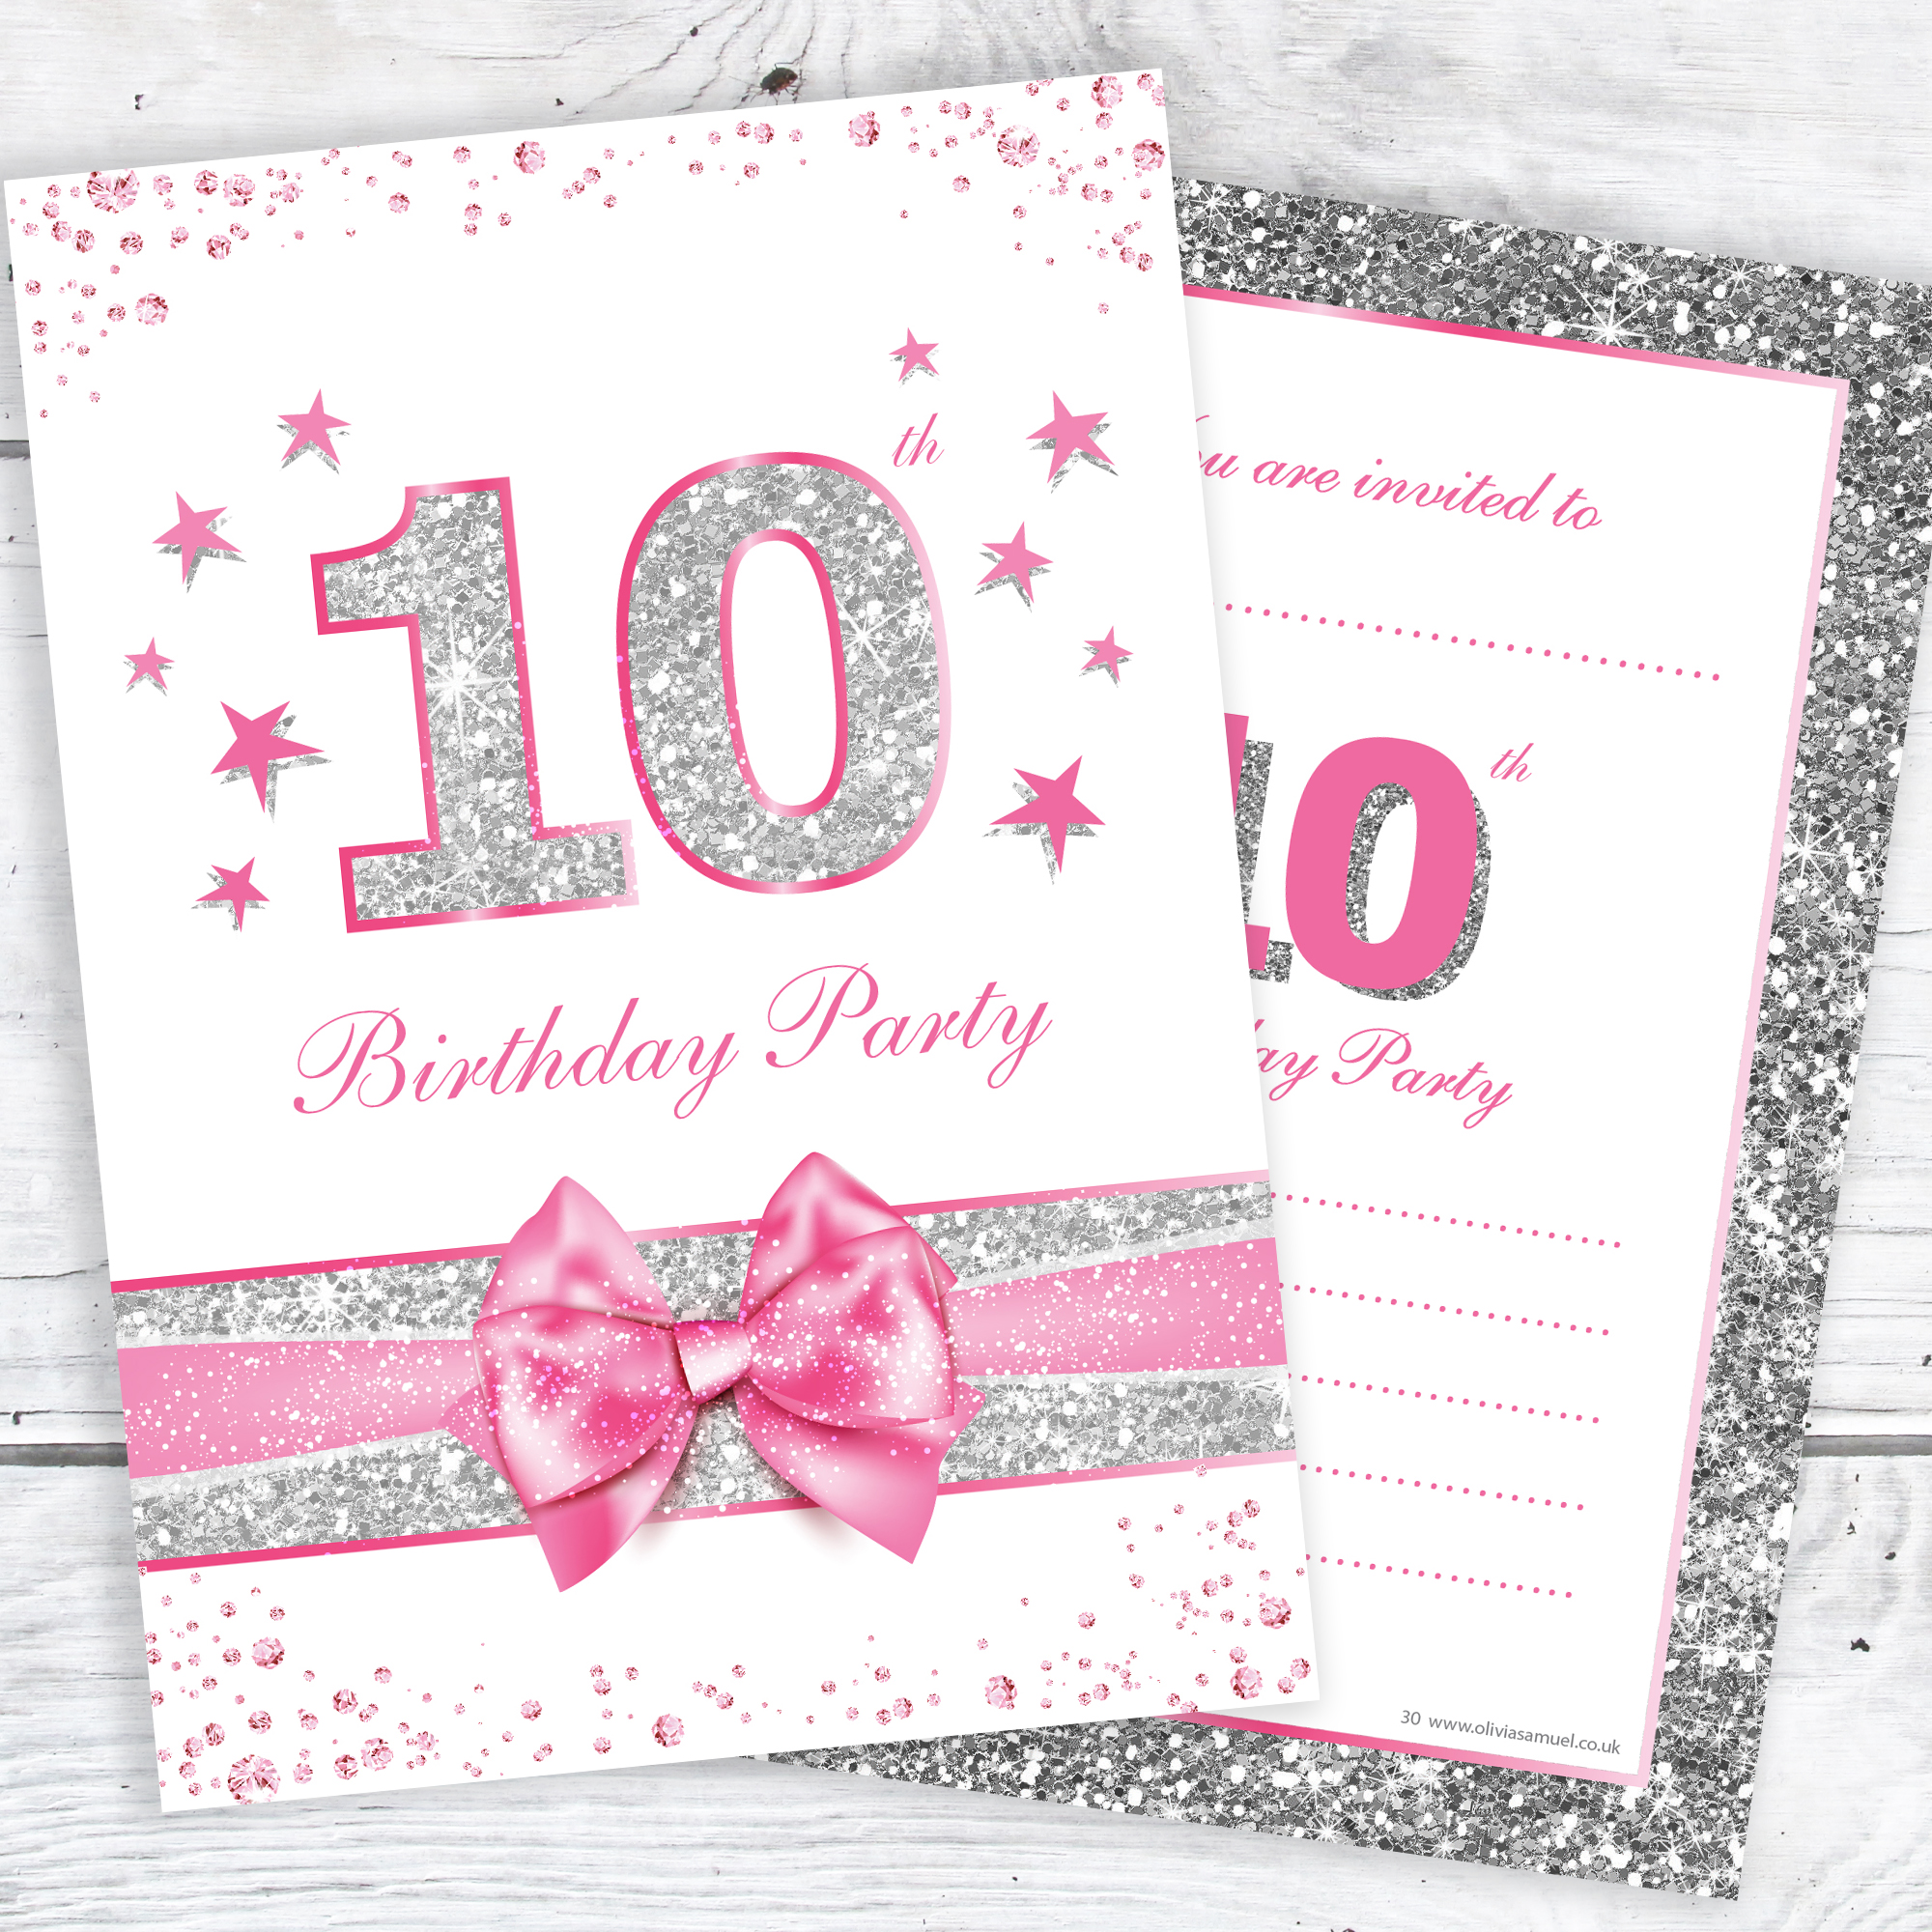 10th birthday party invitations pink sparkly design and photo effect silver glitter a6 postcard size with envelopes pack of 10